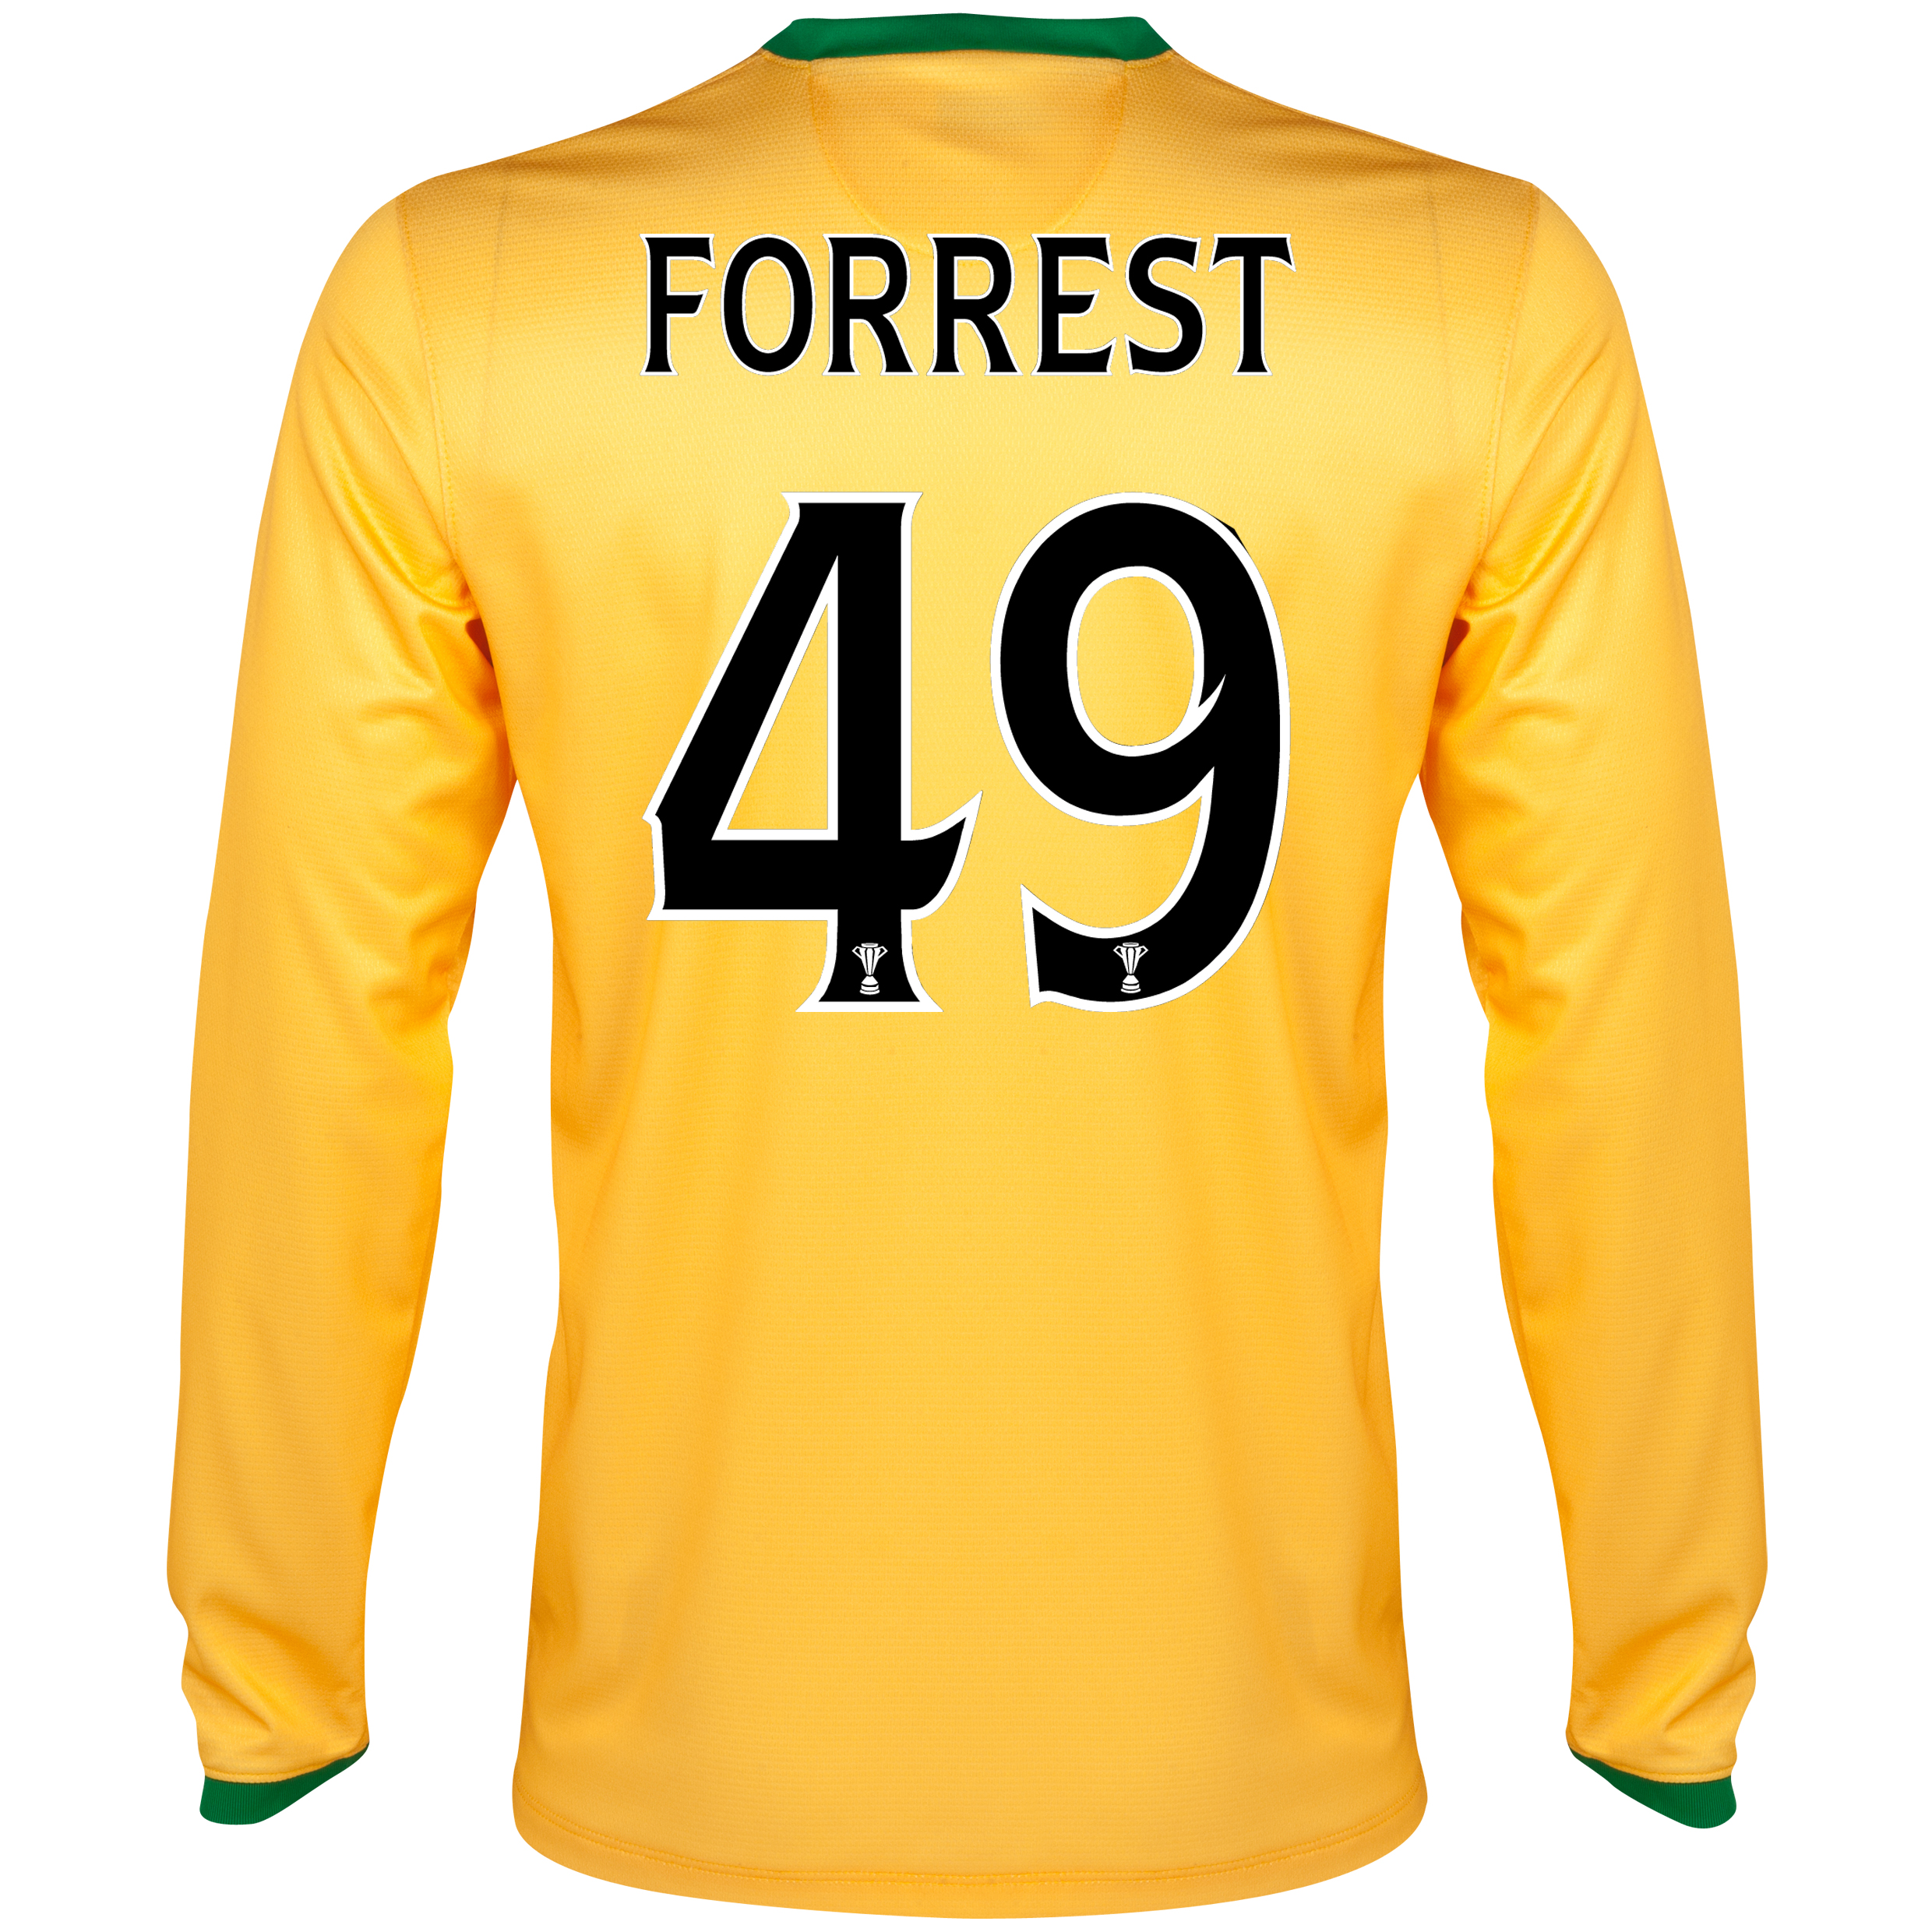 Celtic Away Shirt 2013/14 - L/S- Unsponsored with Forrest 49 printing